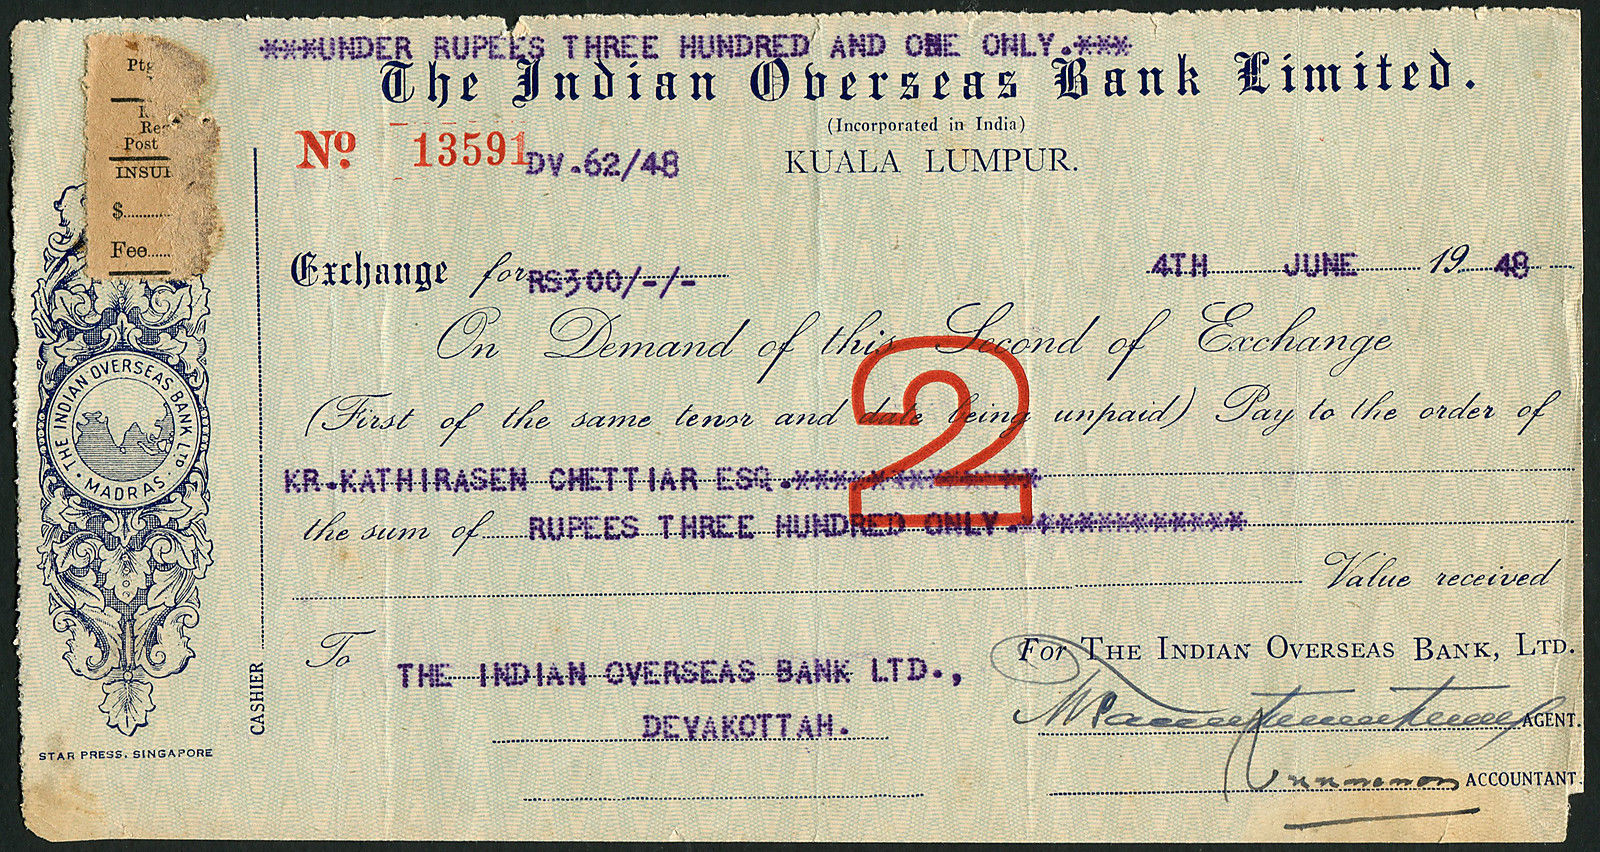 Indian Overseas Bank - Cheque